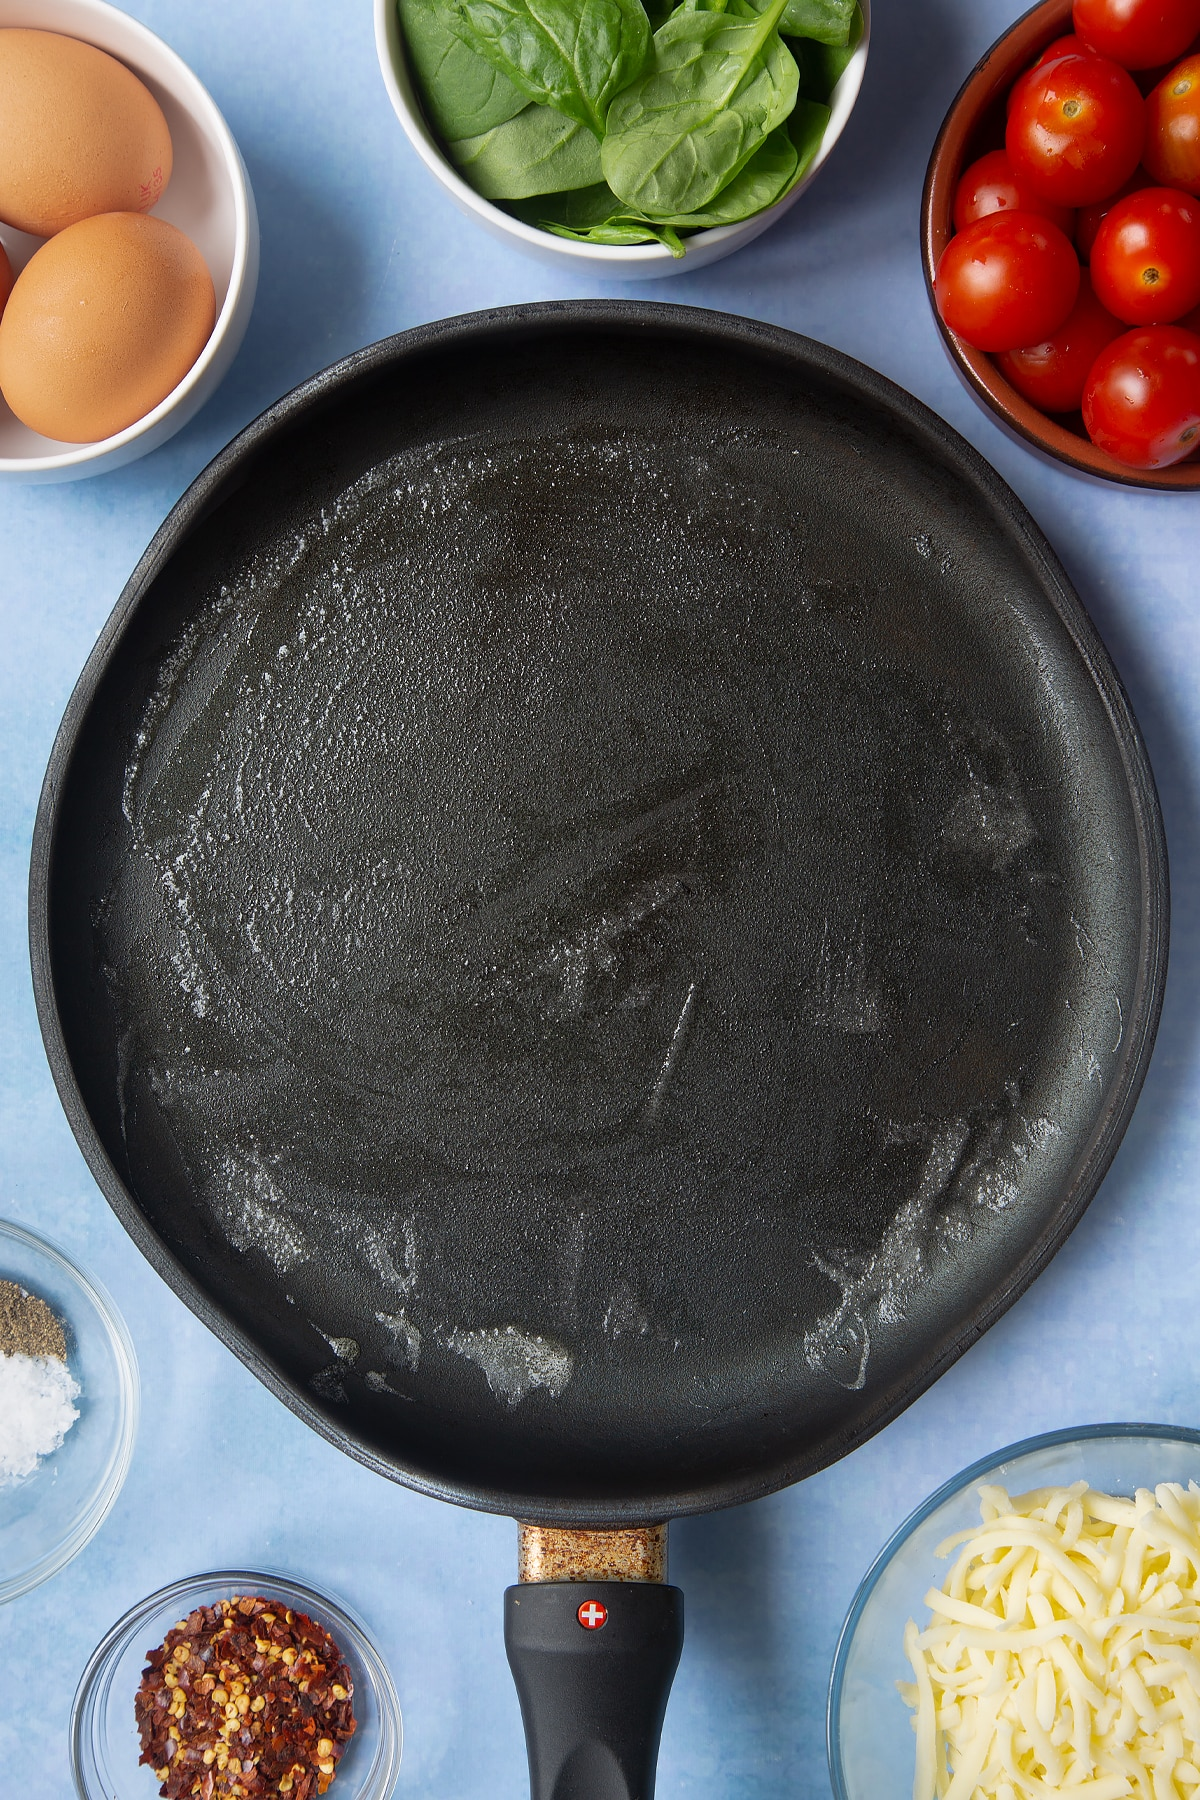 Butter melted in a crepe pan. Ingredients to make buckwheat galettes surround the pan.